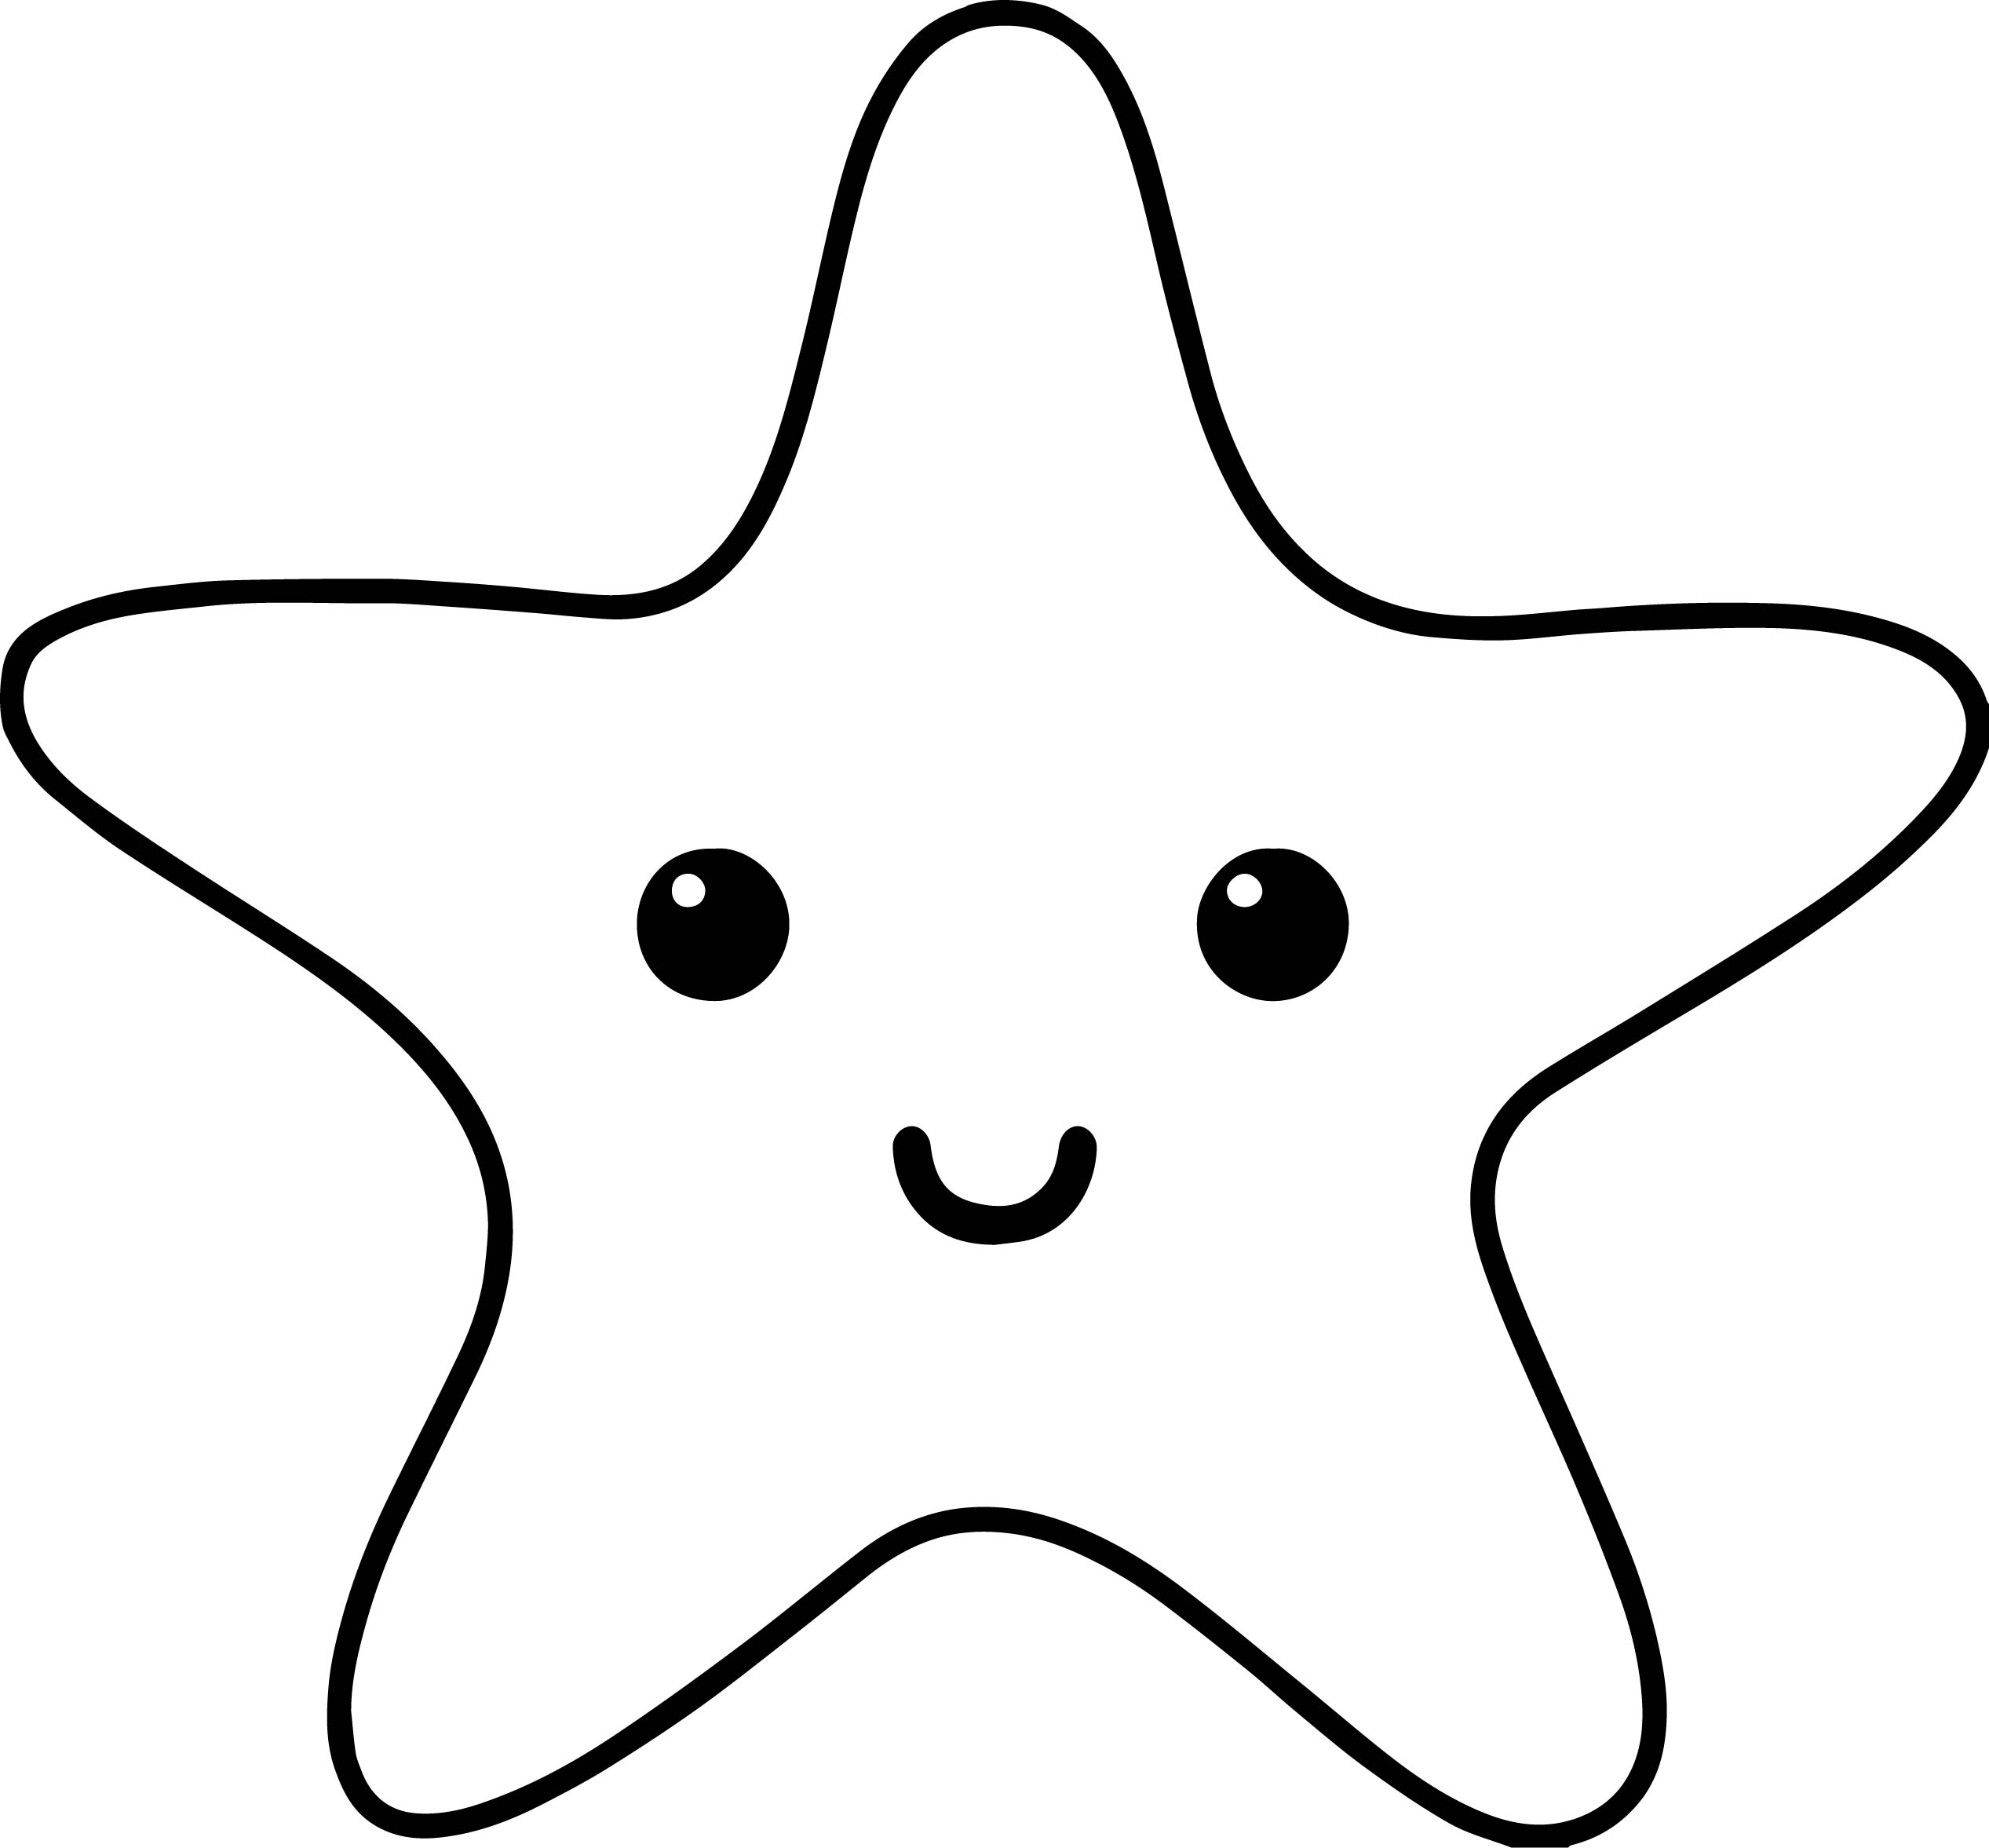 starfish sea creatures coloring page - Starfish Coloring Pages